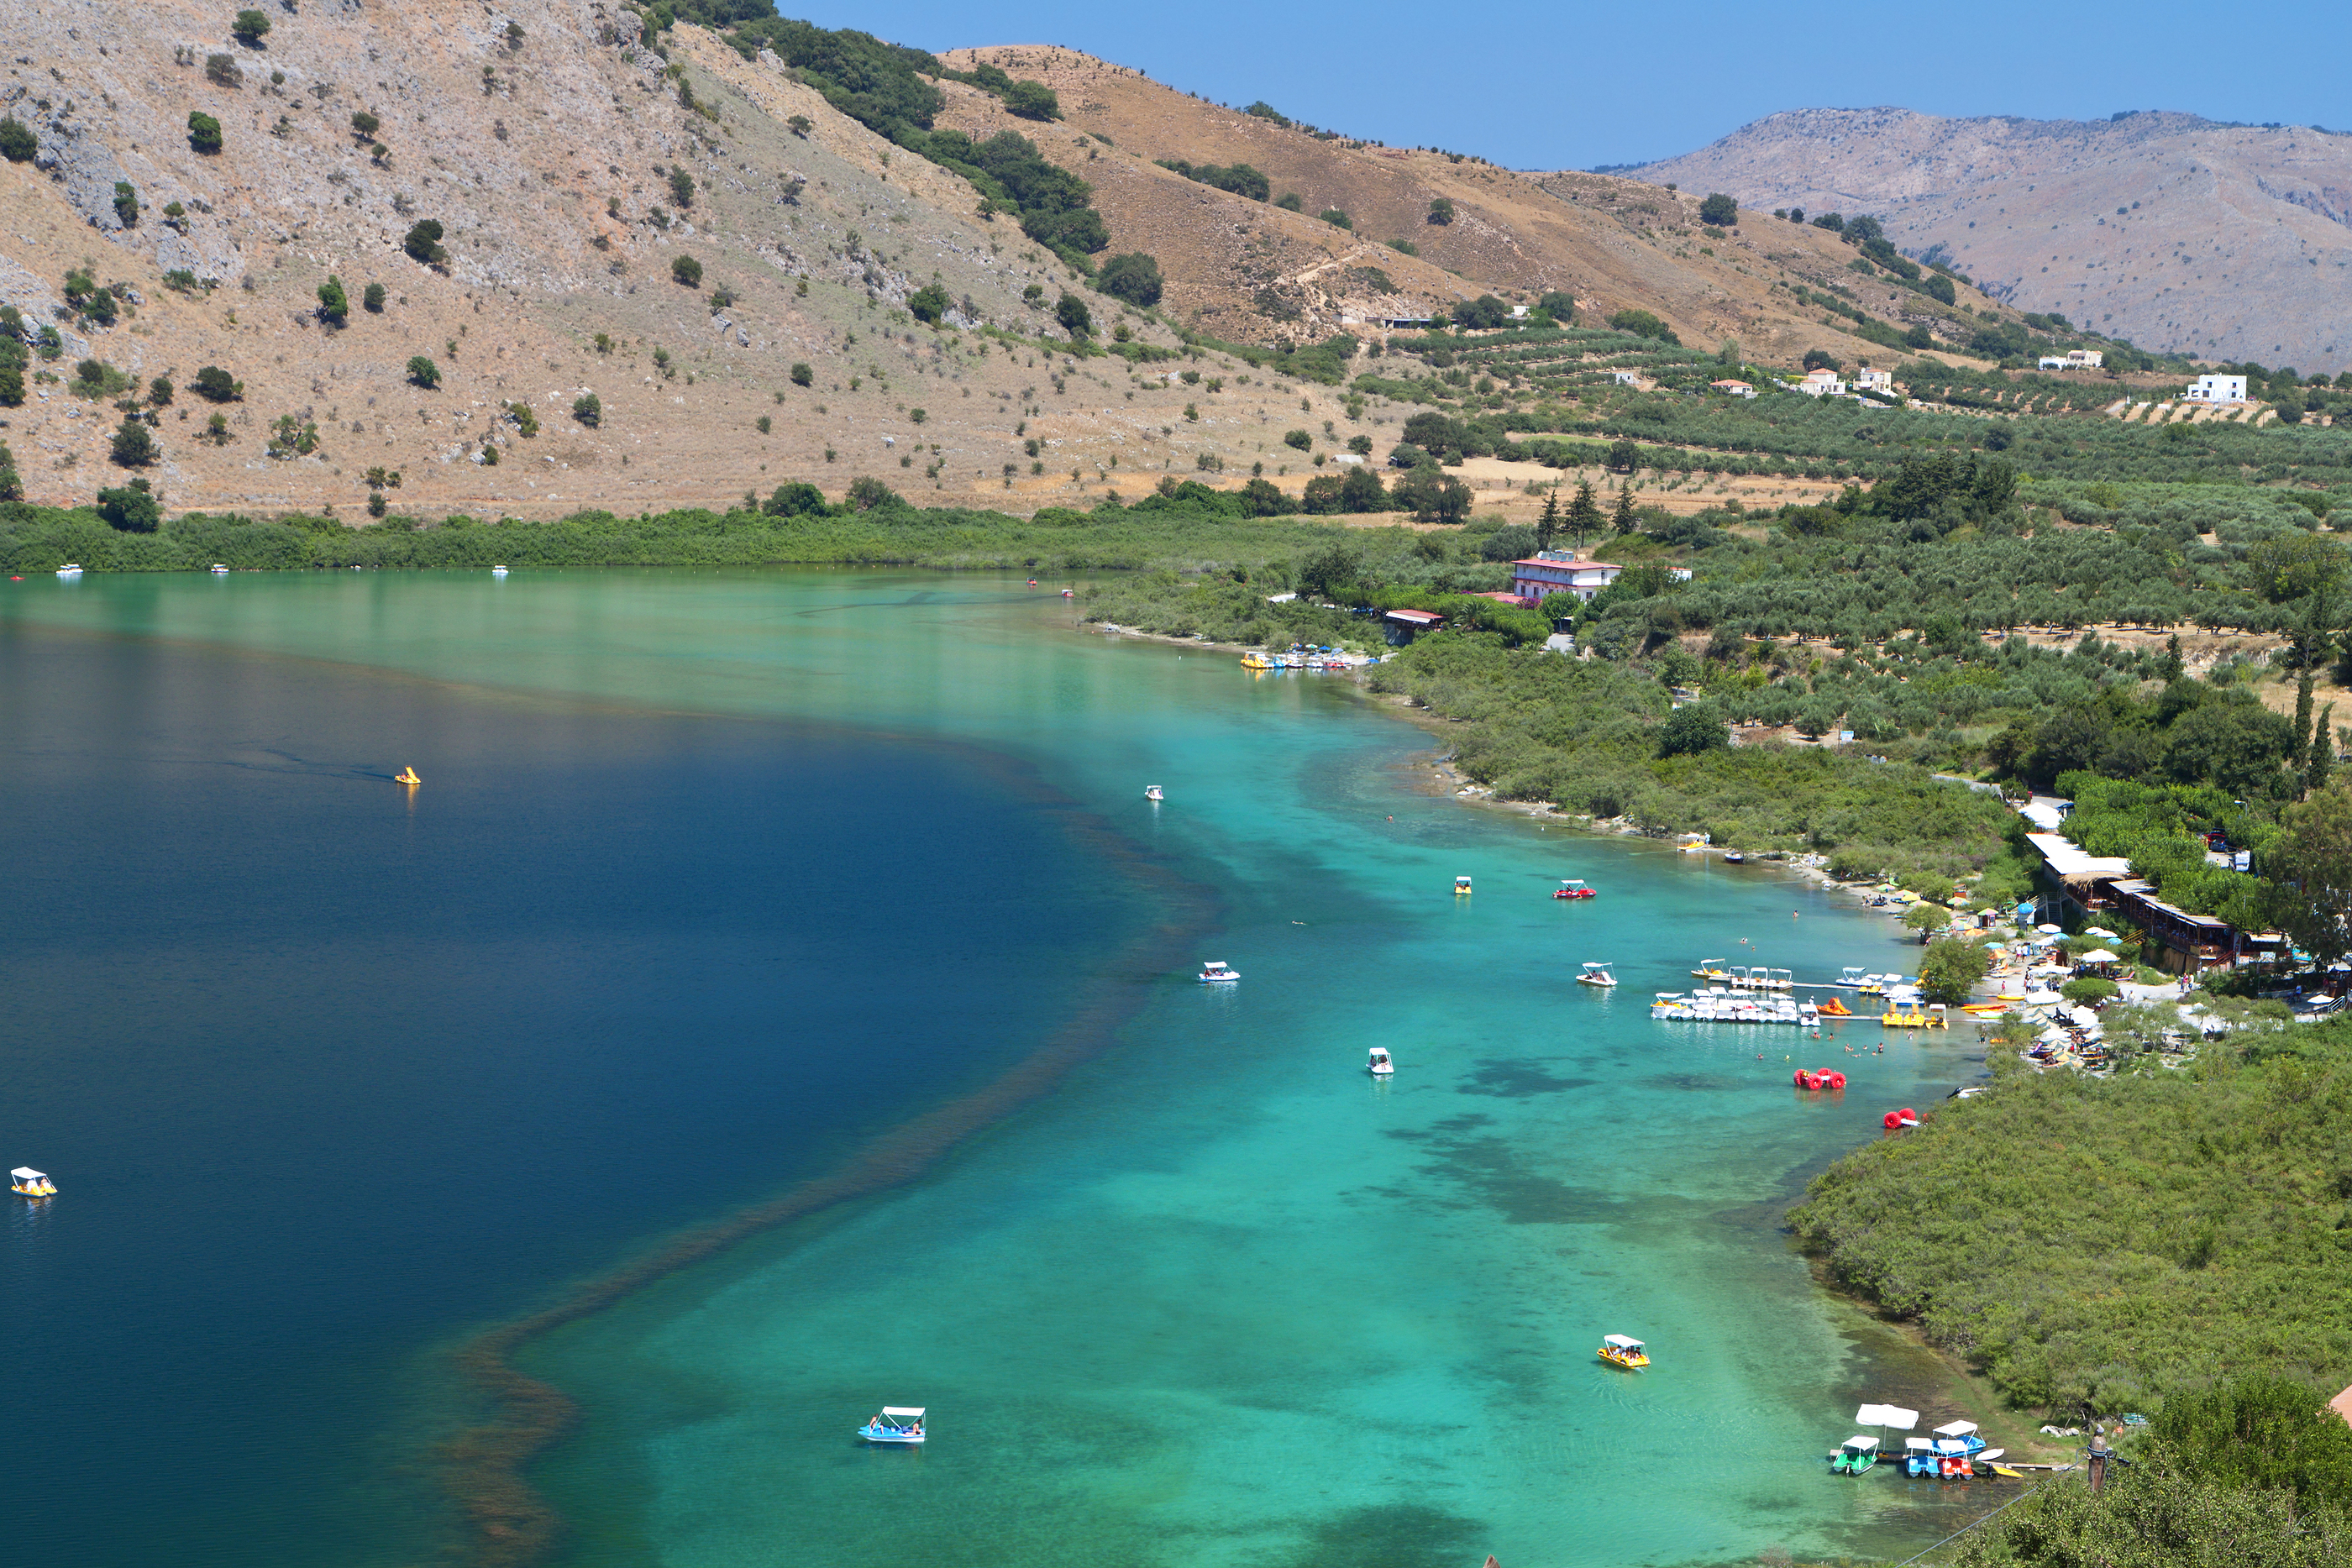 Lake Kournas at Crete, Greece.